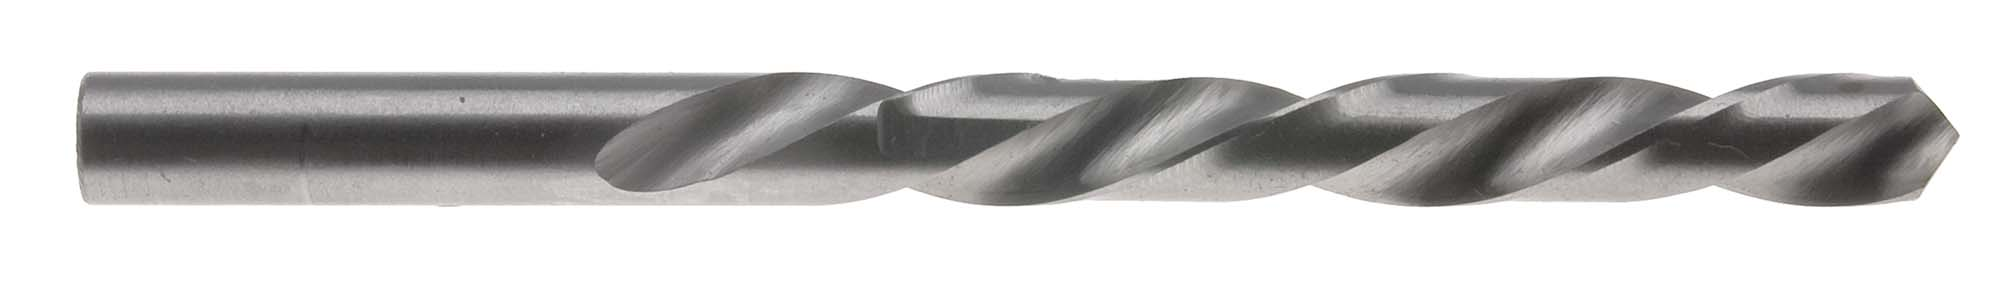 "#1 (.2280"") Left Hand Jobber Drill Bit, High Speed Steel"